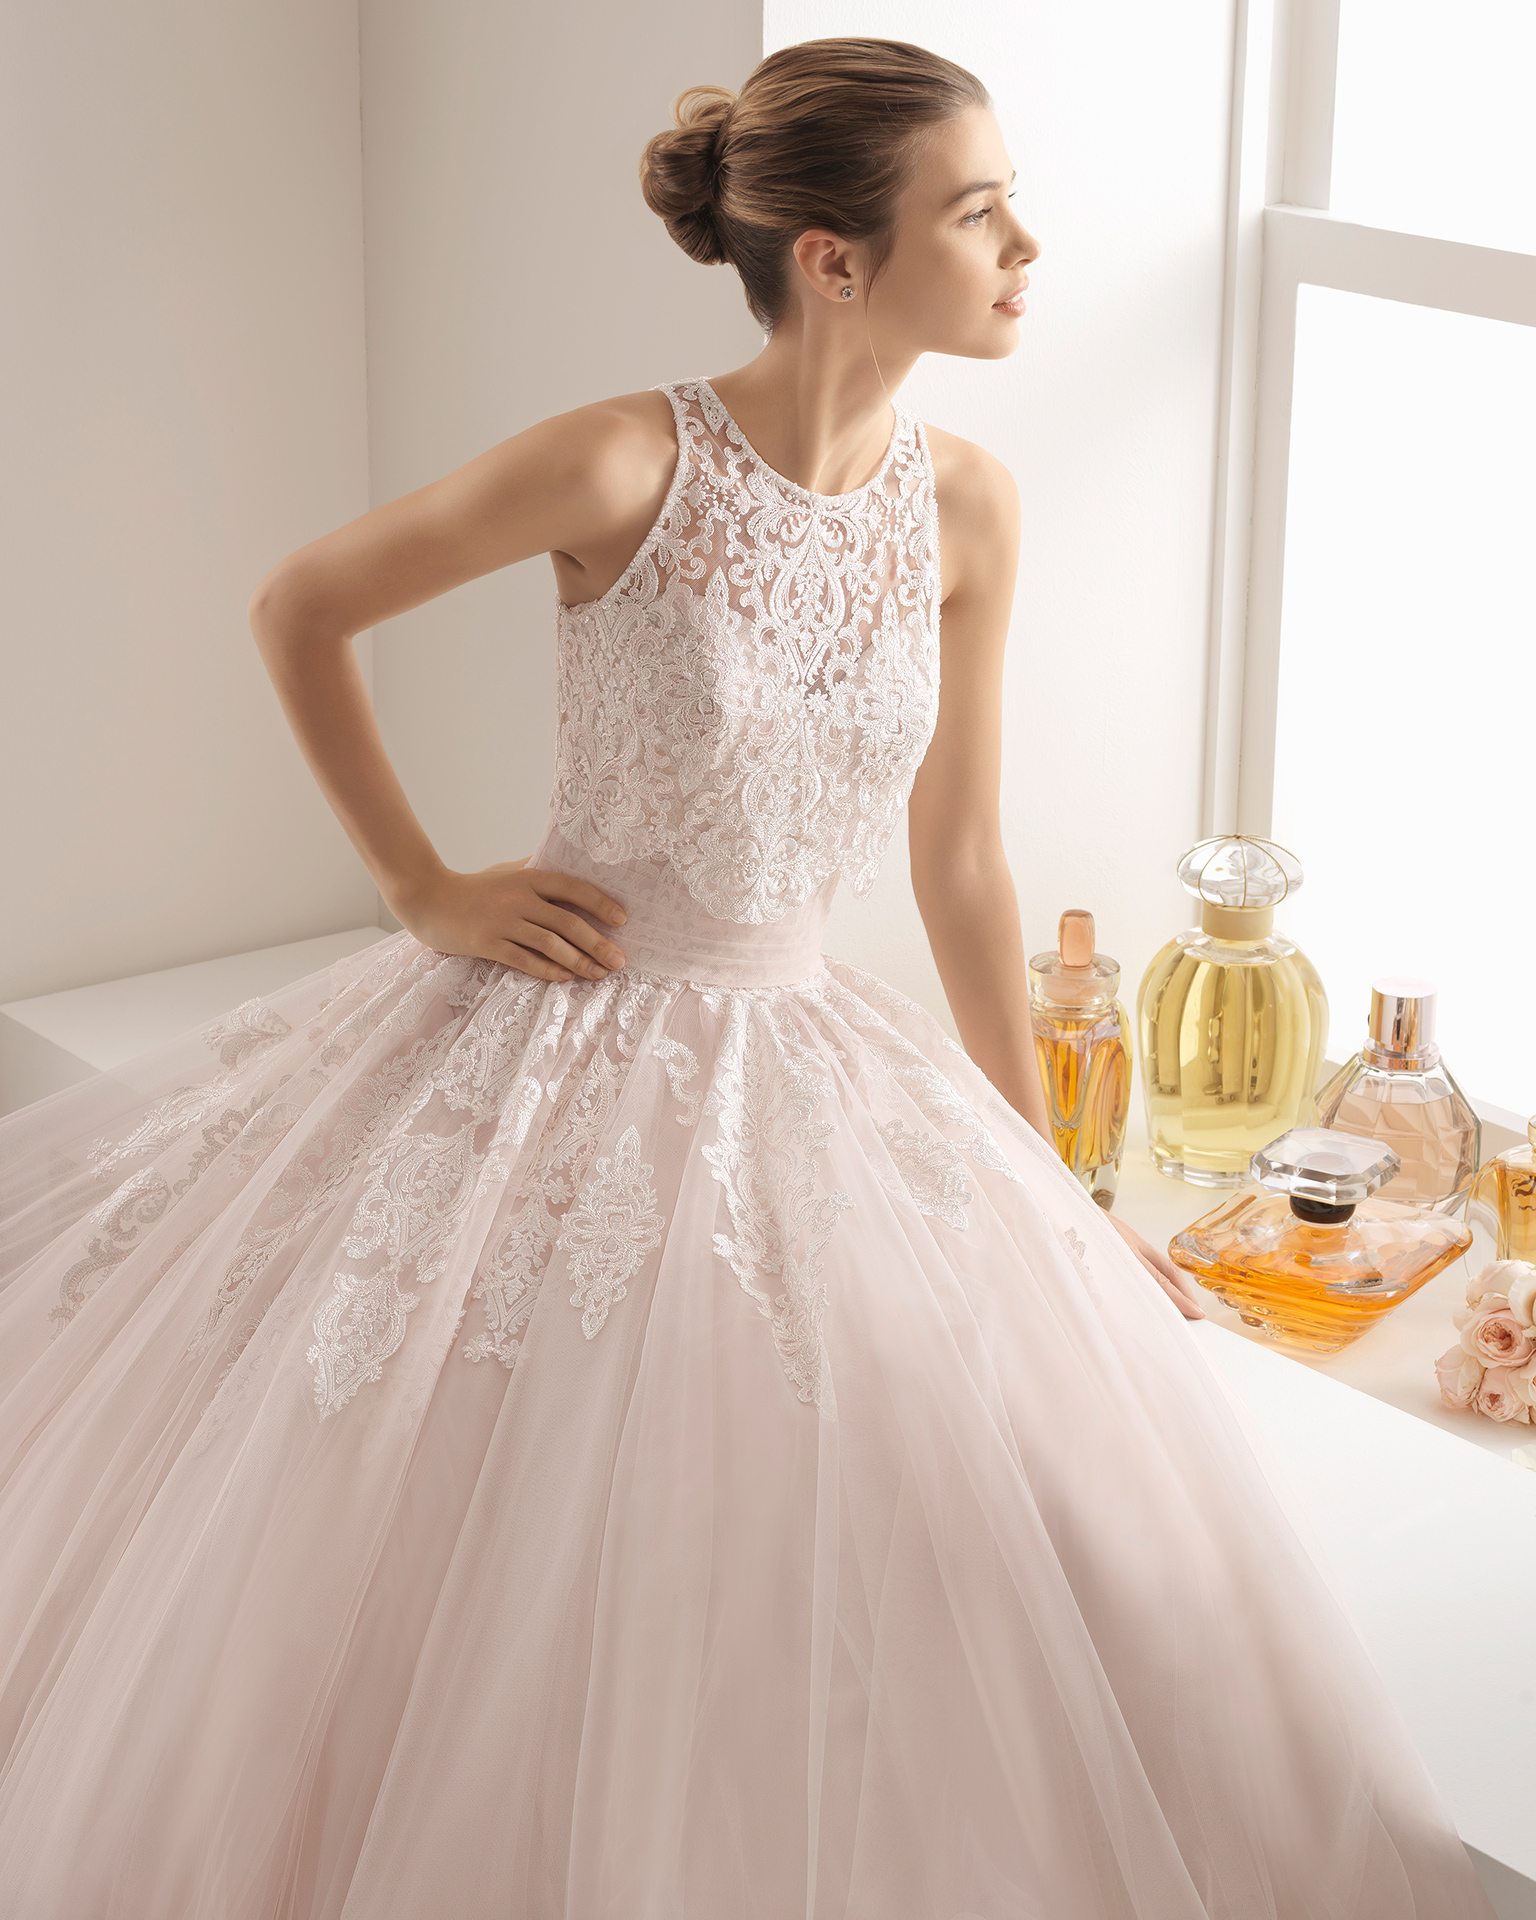 Romantic-style tulle and lace wedding dress with sweetheart neckline, in rose and natural.